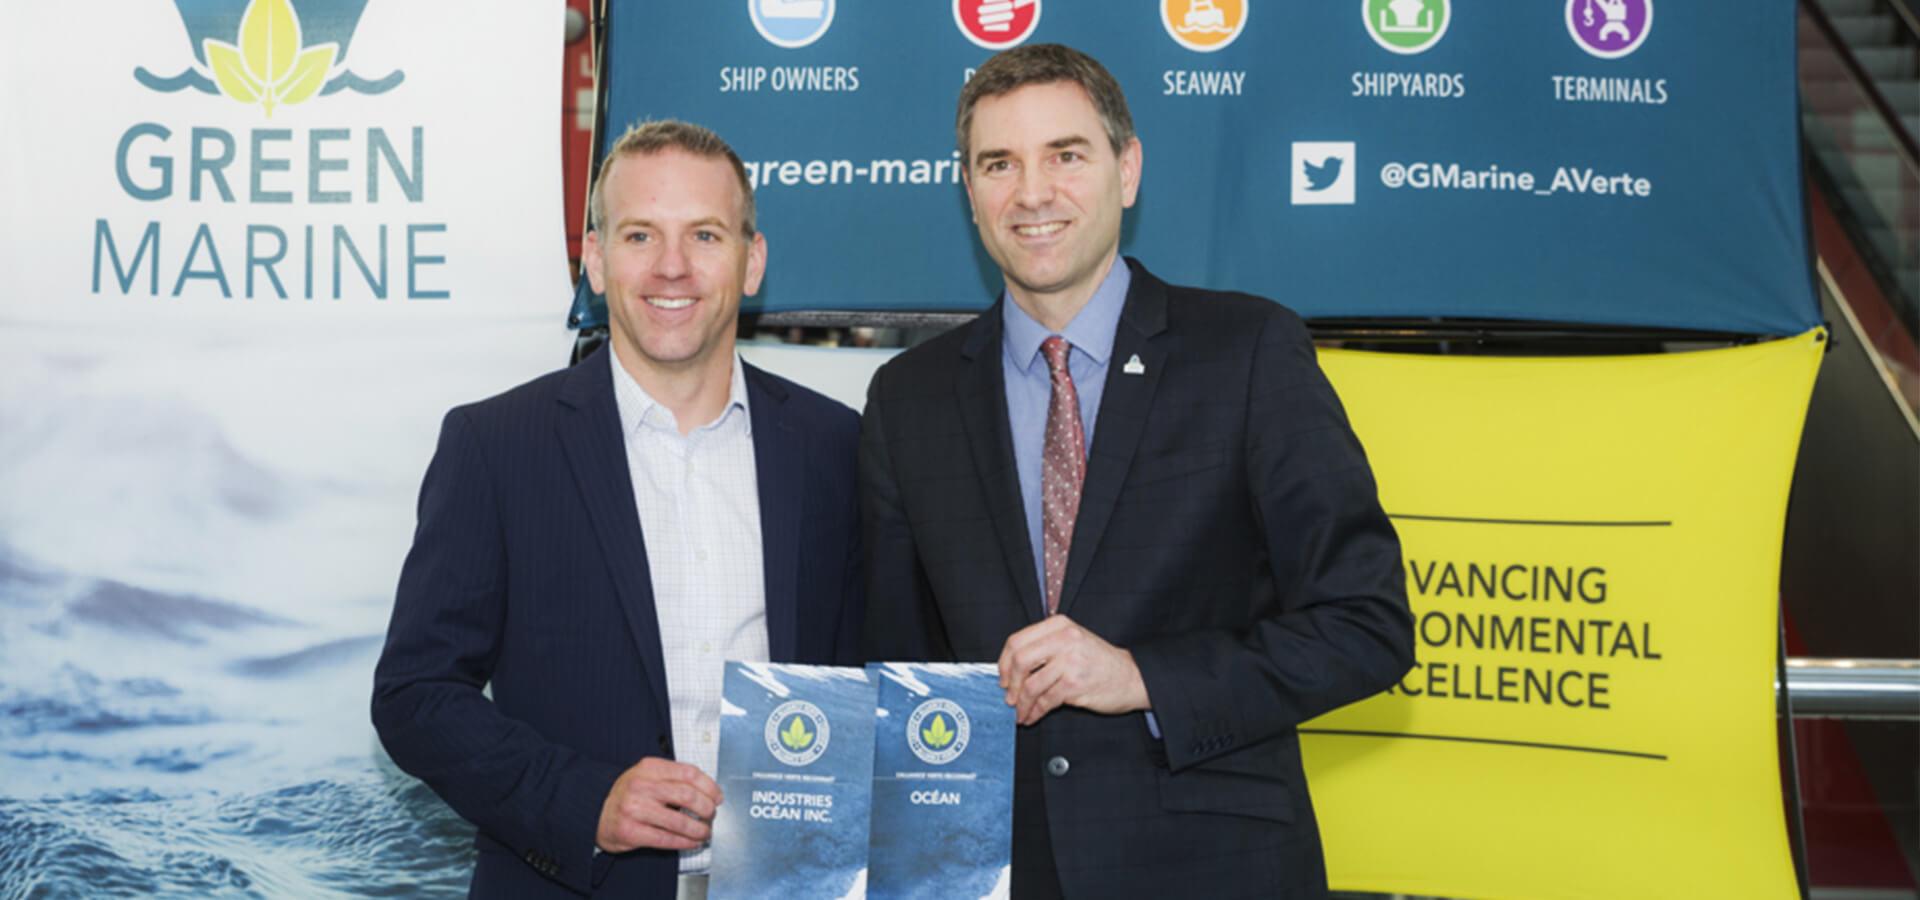 Ocean Towing and Navigation and Ocean Industries Inc. receive the Green Marine certification.